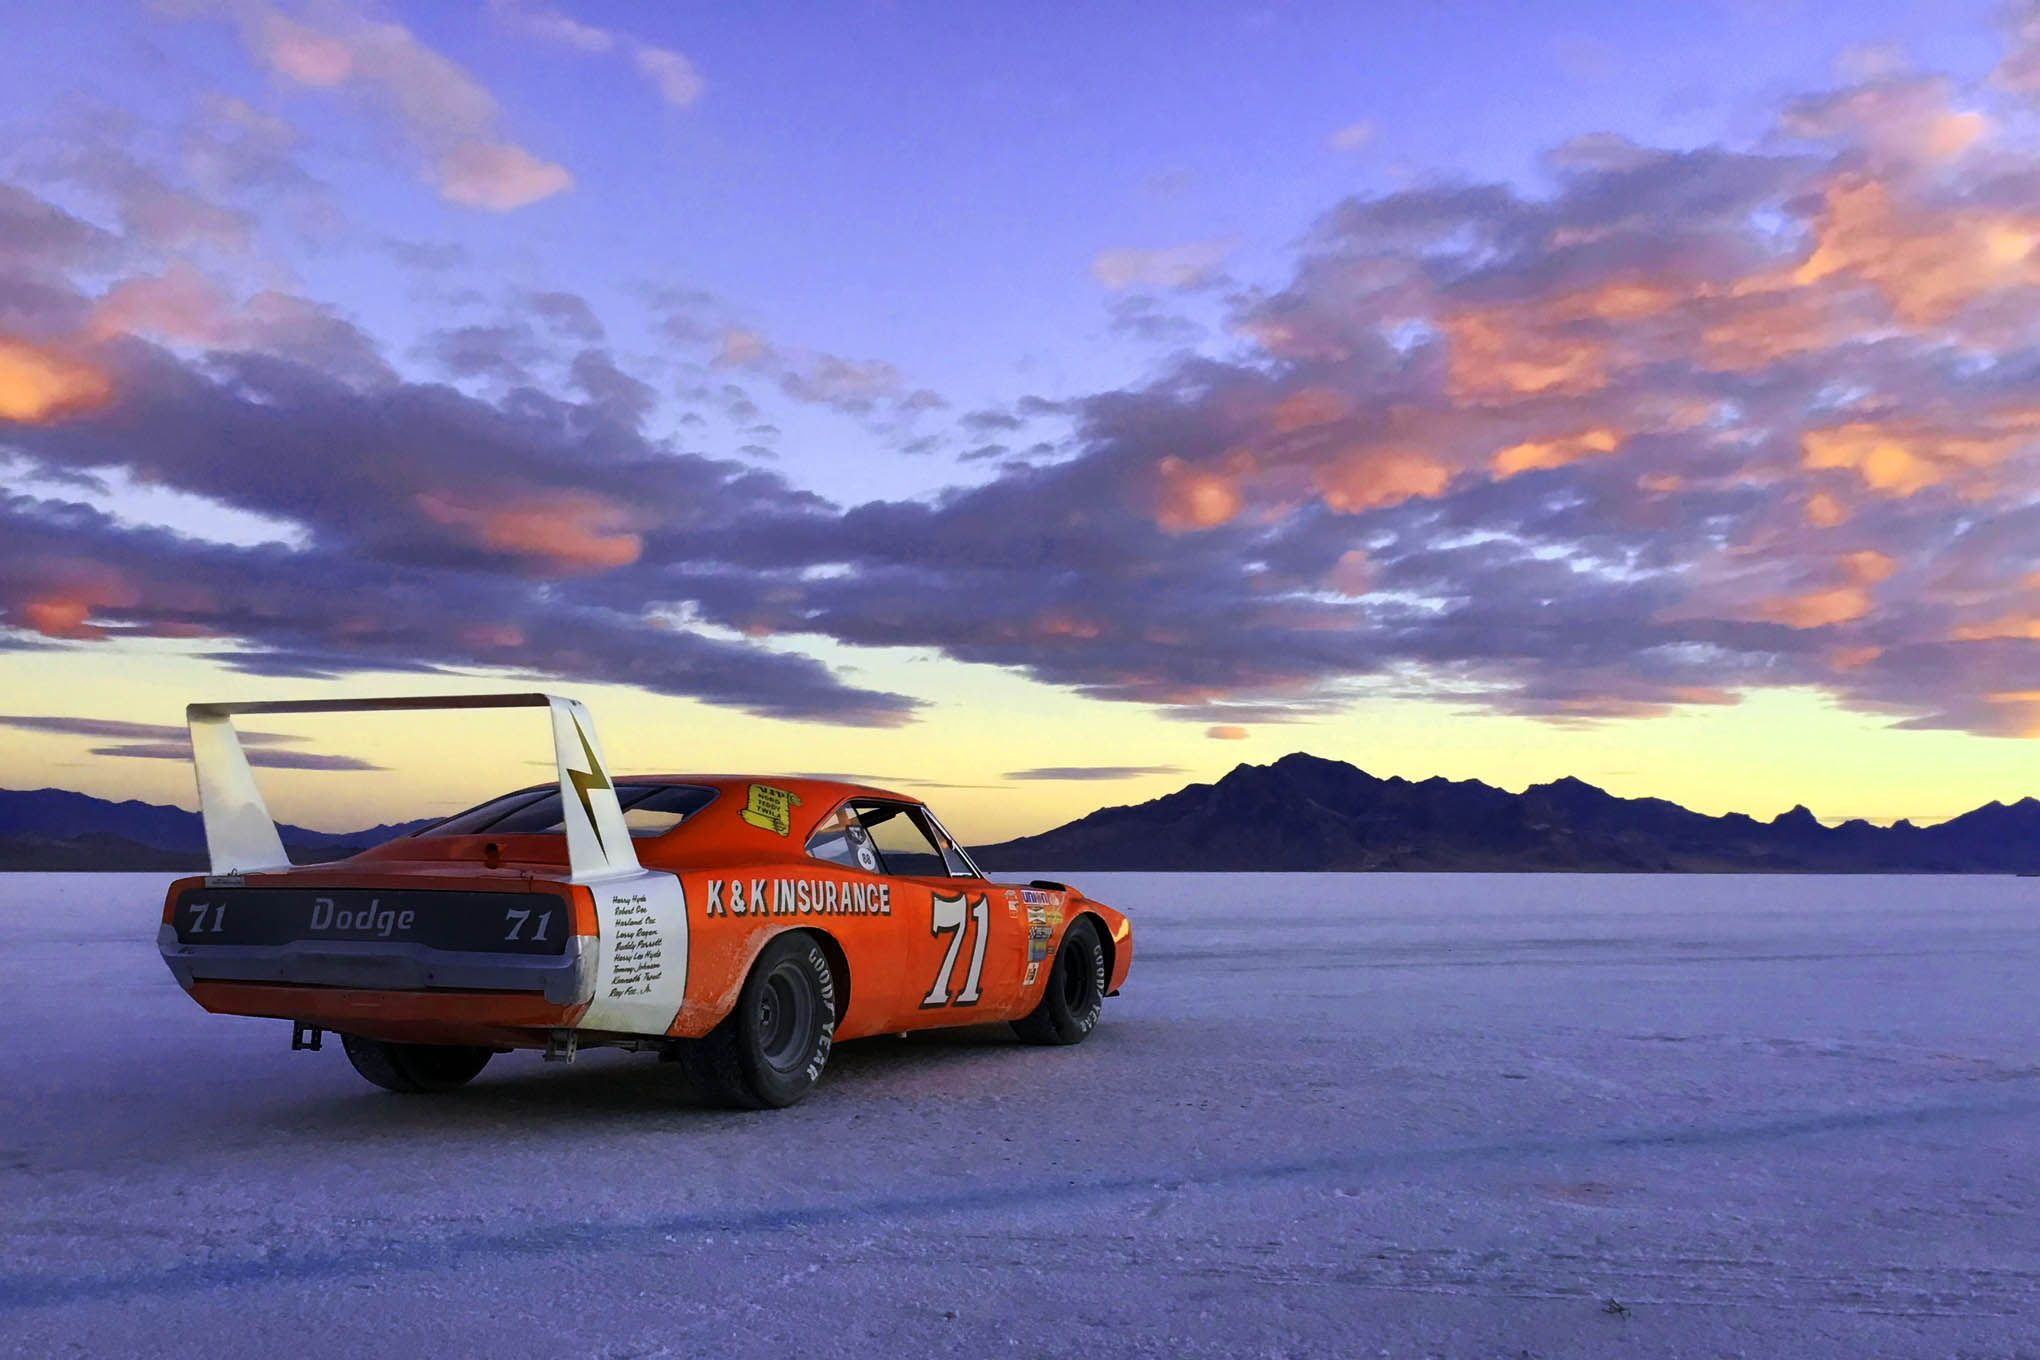 Memories are rekindled as Tim Wellborn returns to Bonneville with